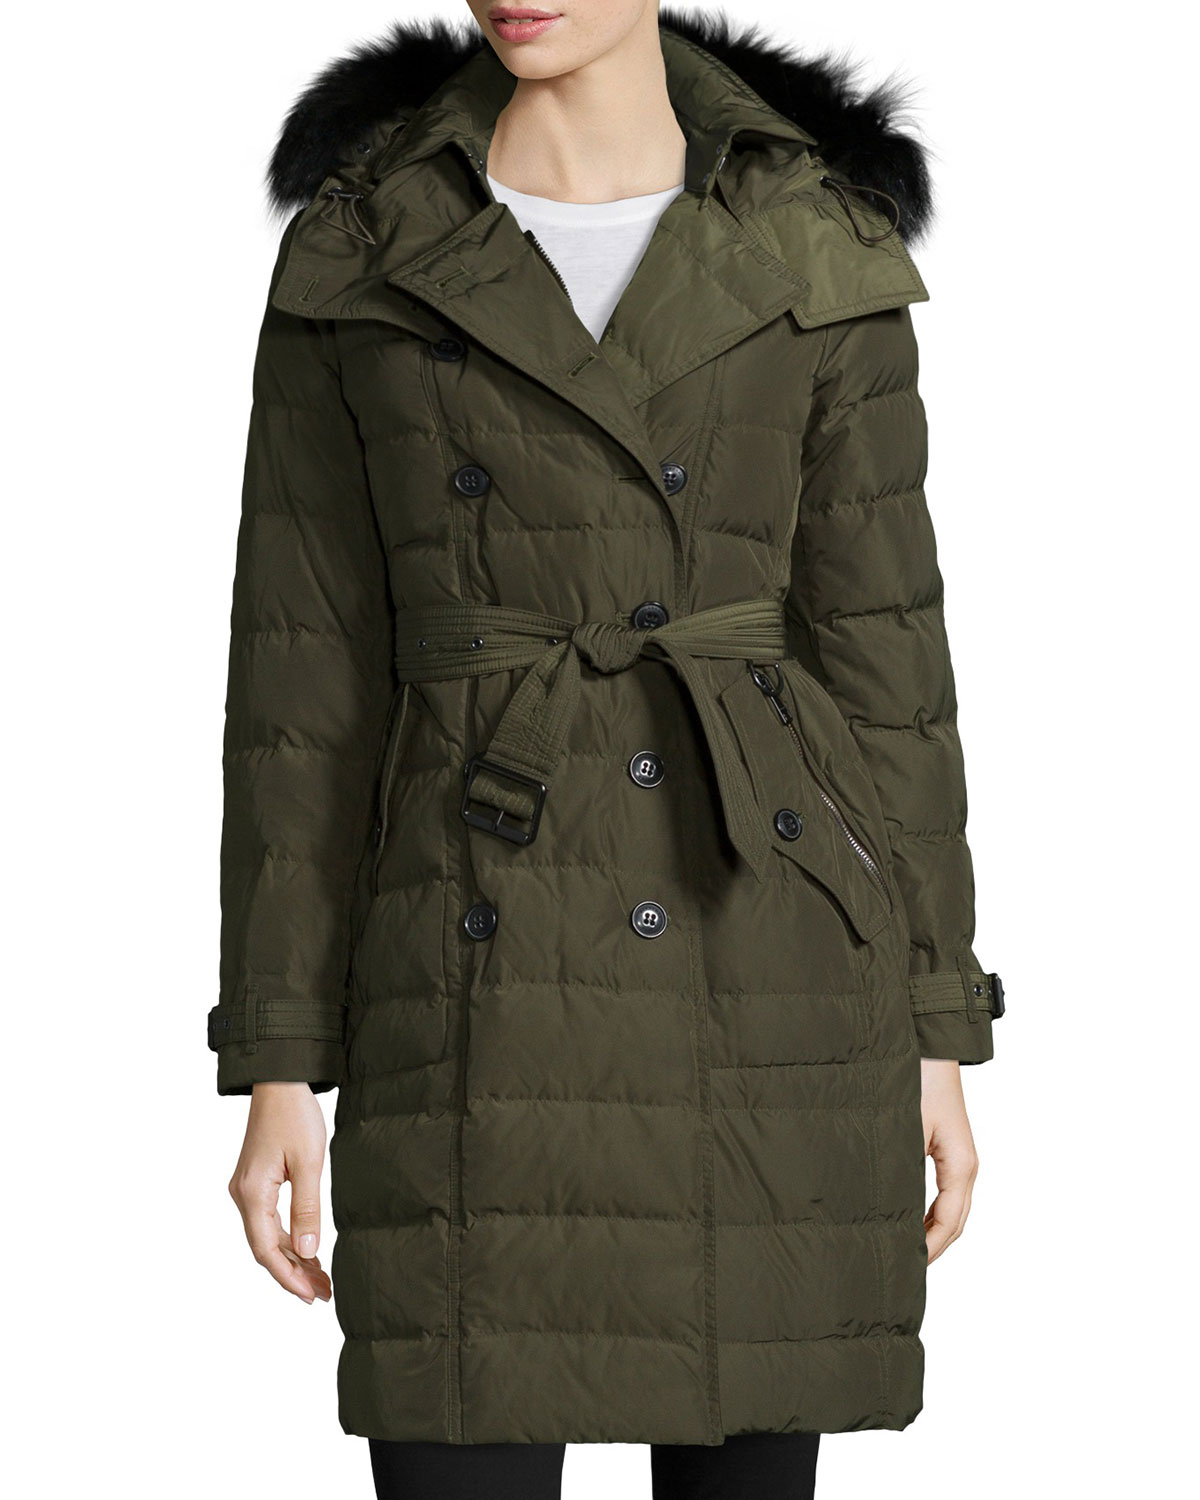 a480a55b0 Allerdale Double-Breasted Puffer Coat with Fur